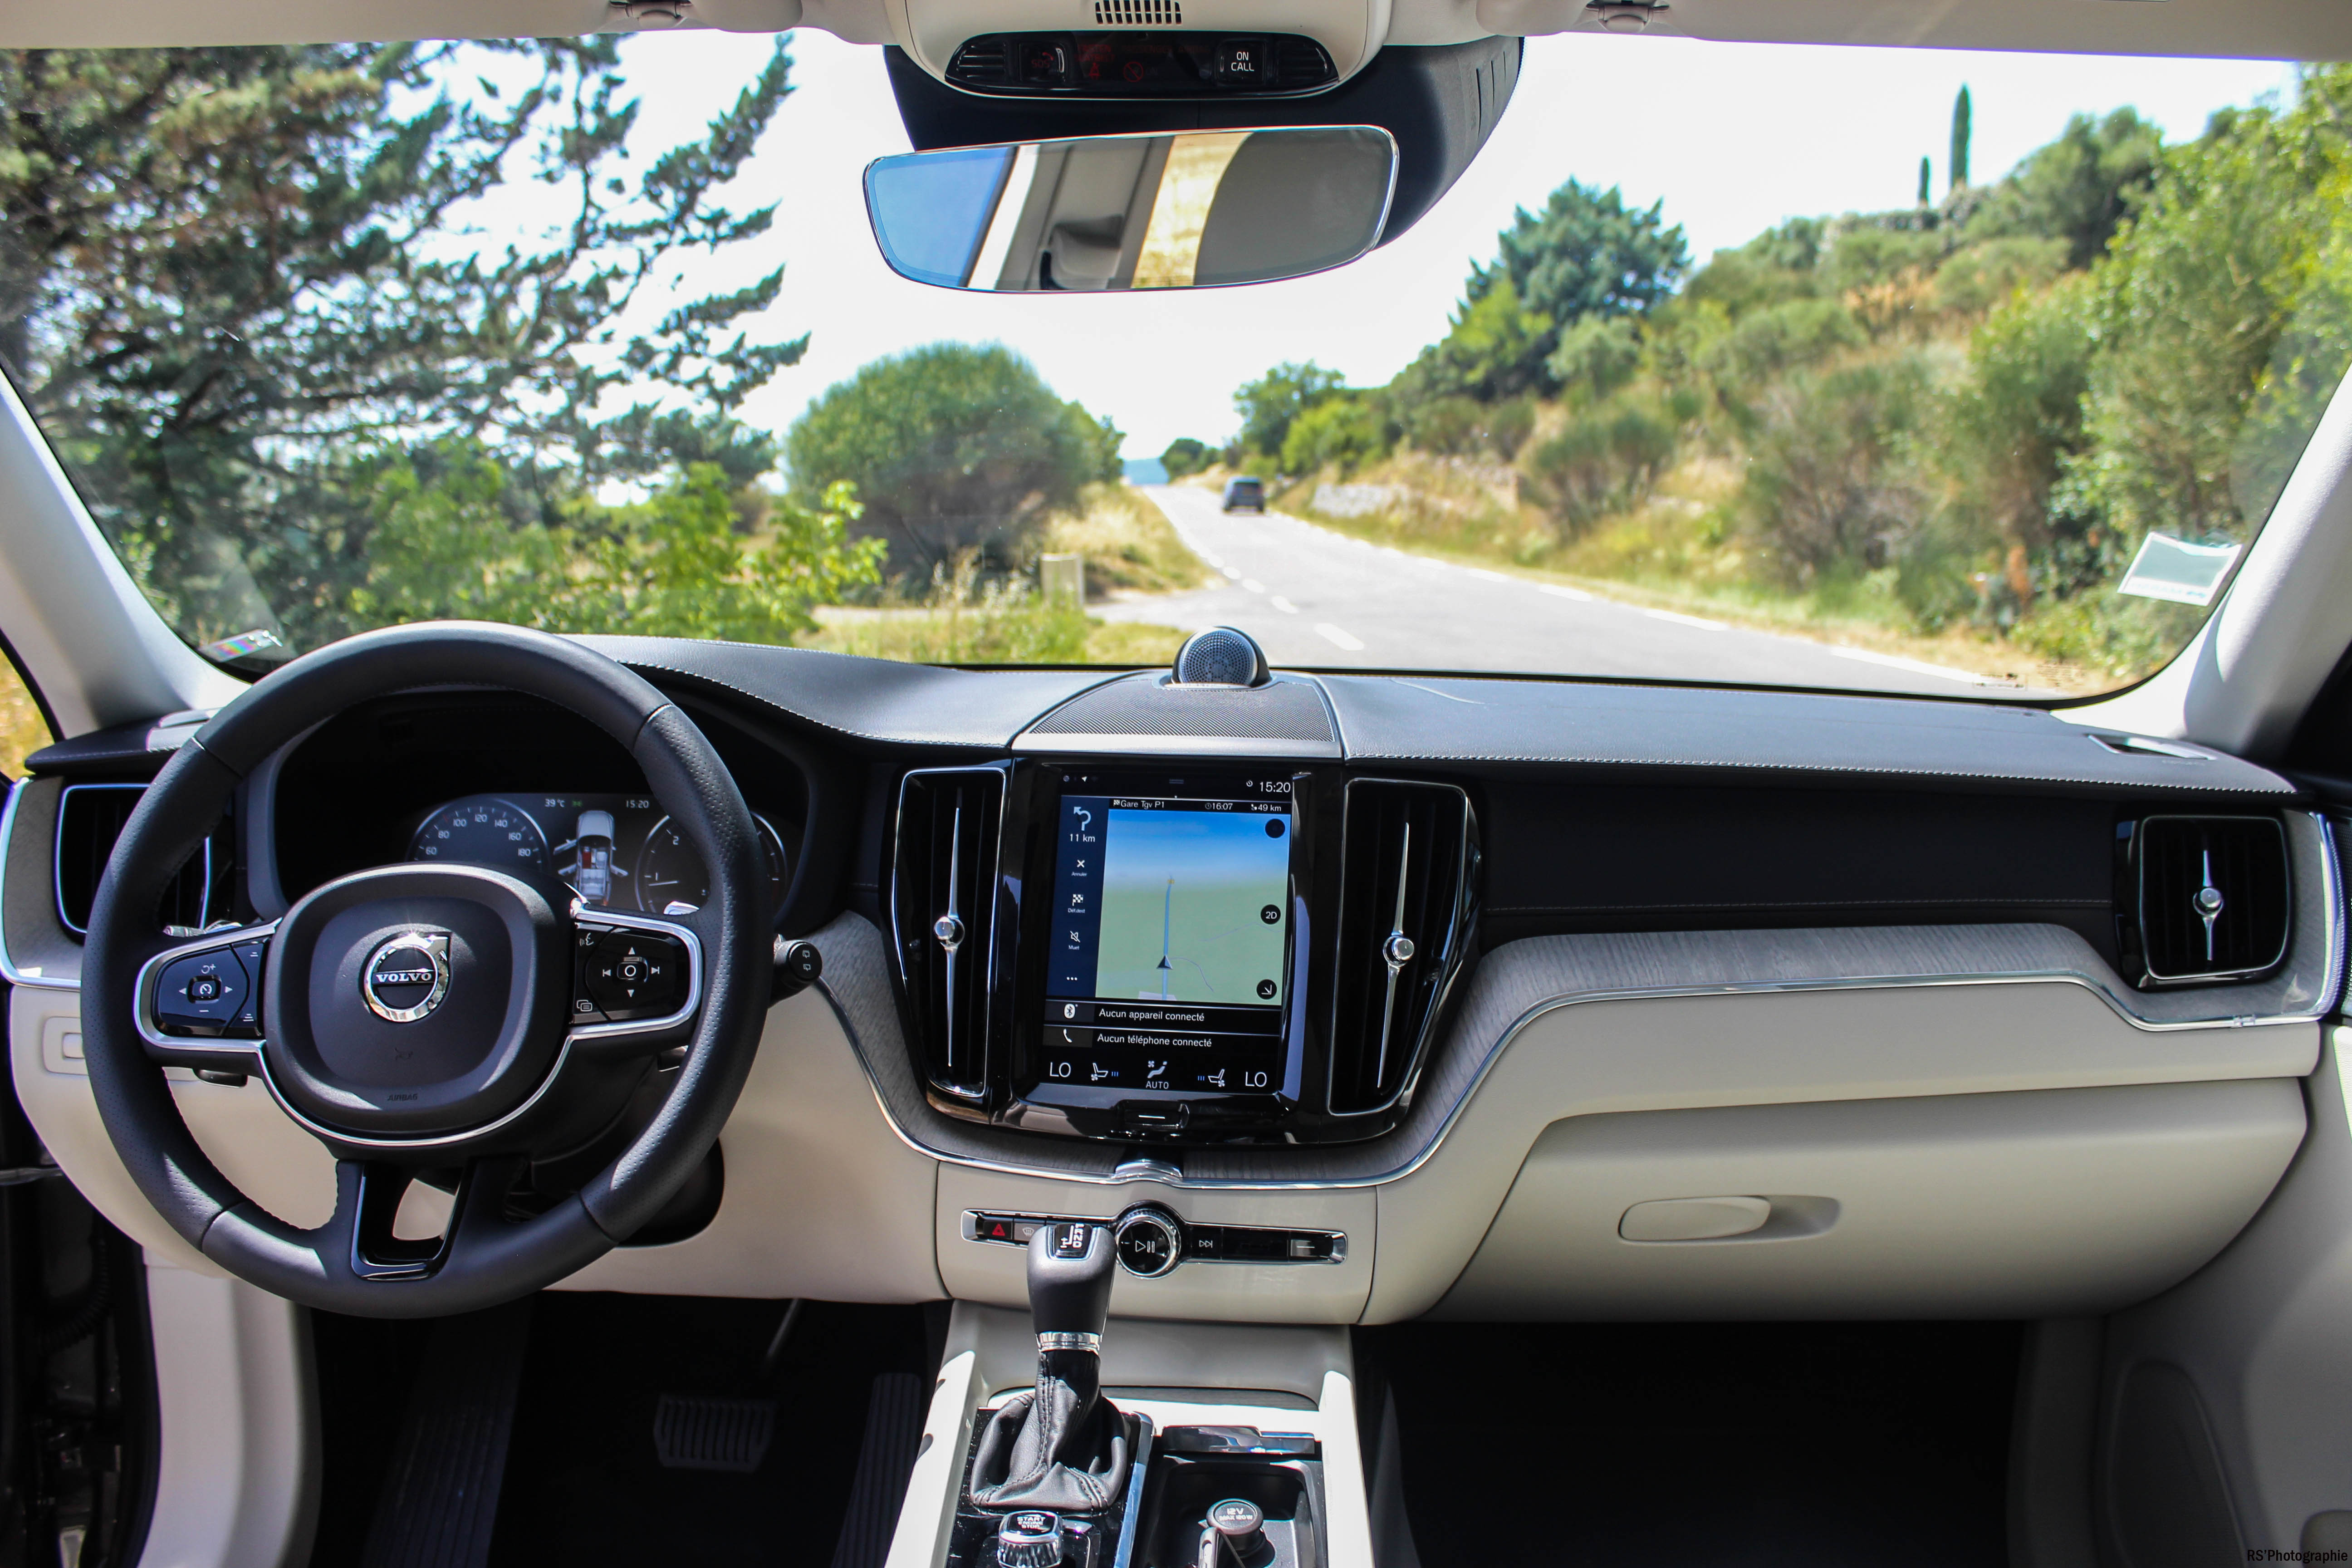 https://gotmdm.com/driving/wp-content/uploads/sites/8/2017/07/Op%C3%A9Volvo71-volvo-xc60-int%C3%A9rieur-onboard-Arnaud-Demasier-RSPhotographie.jpg